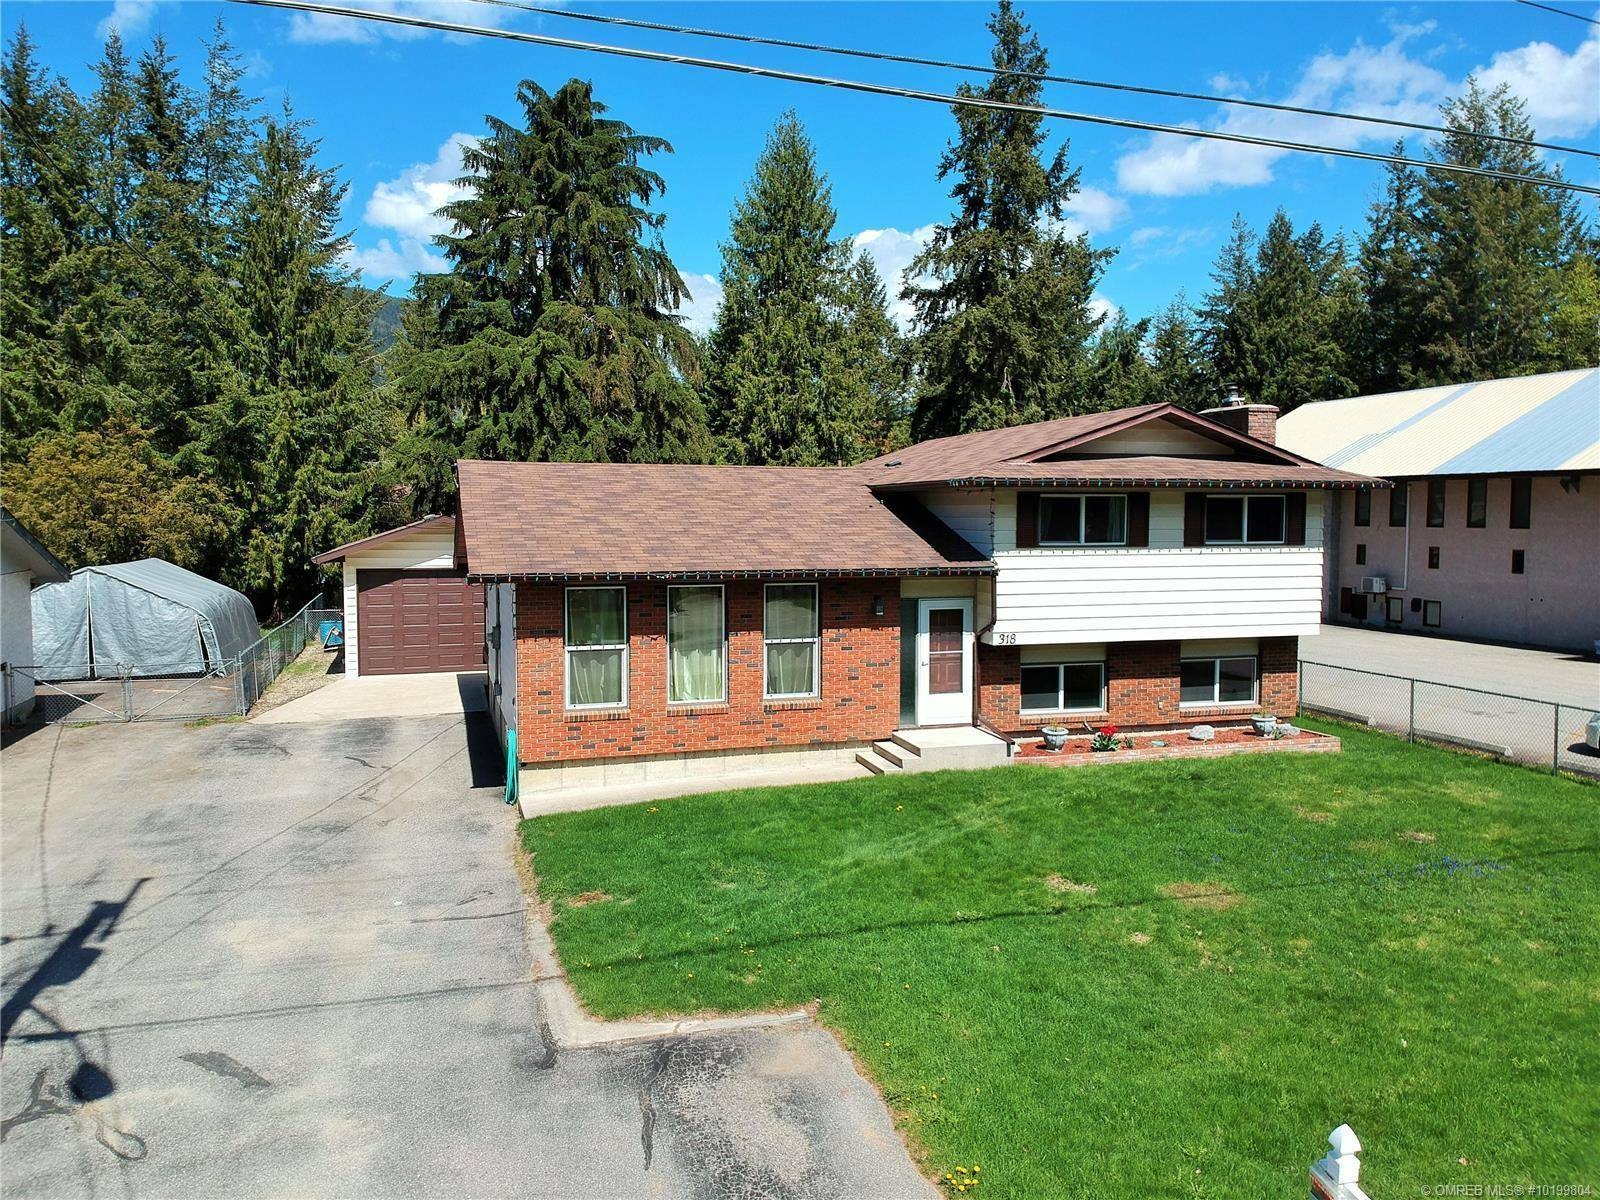 House for sale at 318 Kappel St Sicamous British Columbia - MLS: 10199804